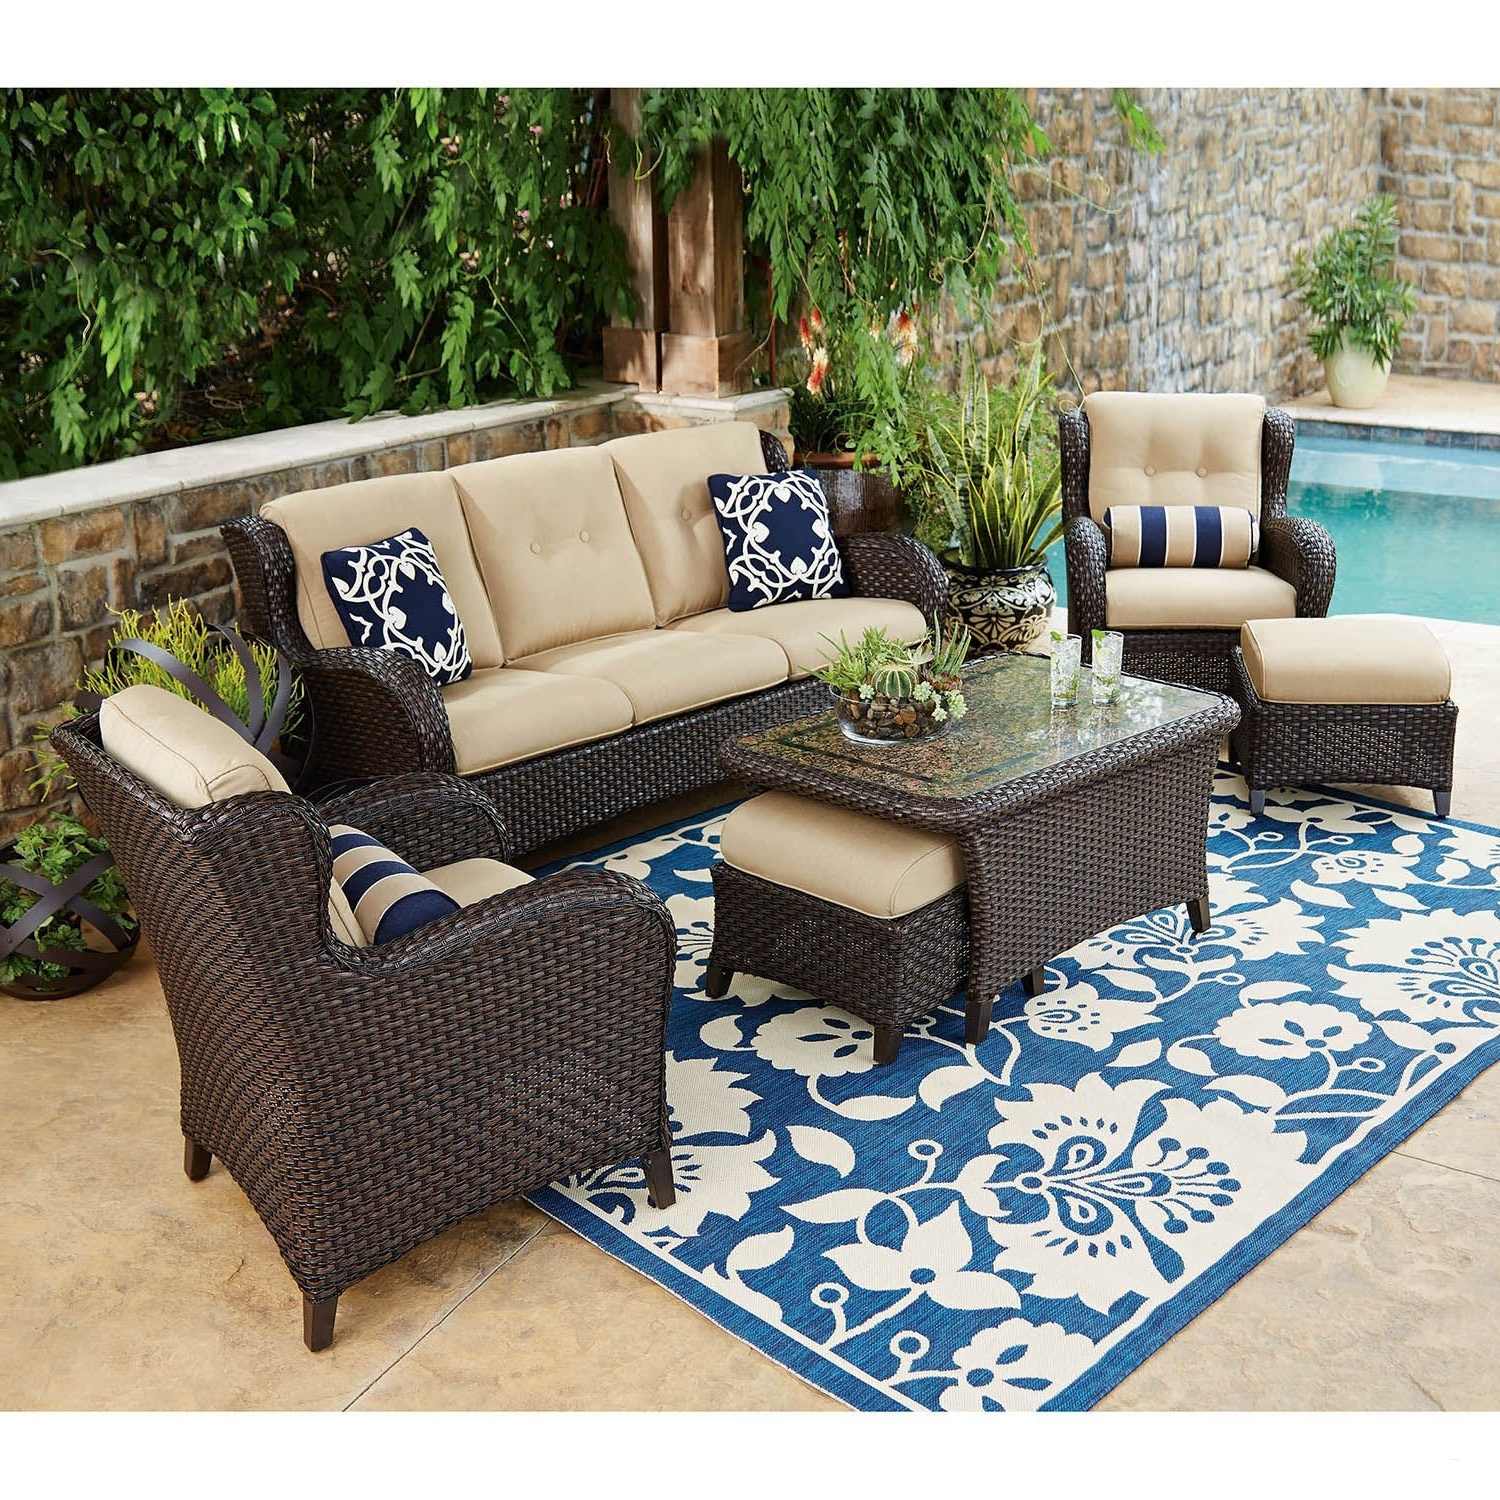 Kohls Patio Umbrellas Luxury Sonoma Patio Furniture Best Chair 49 Pertaining To Well Known Kohls Patio Umbrellas (View 8 of 20)